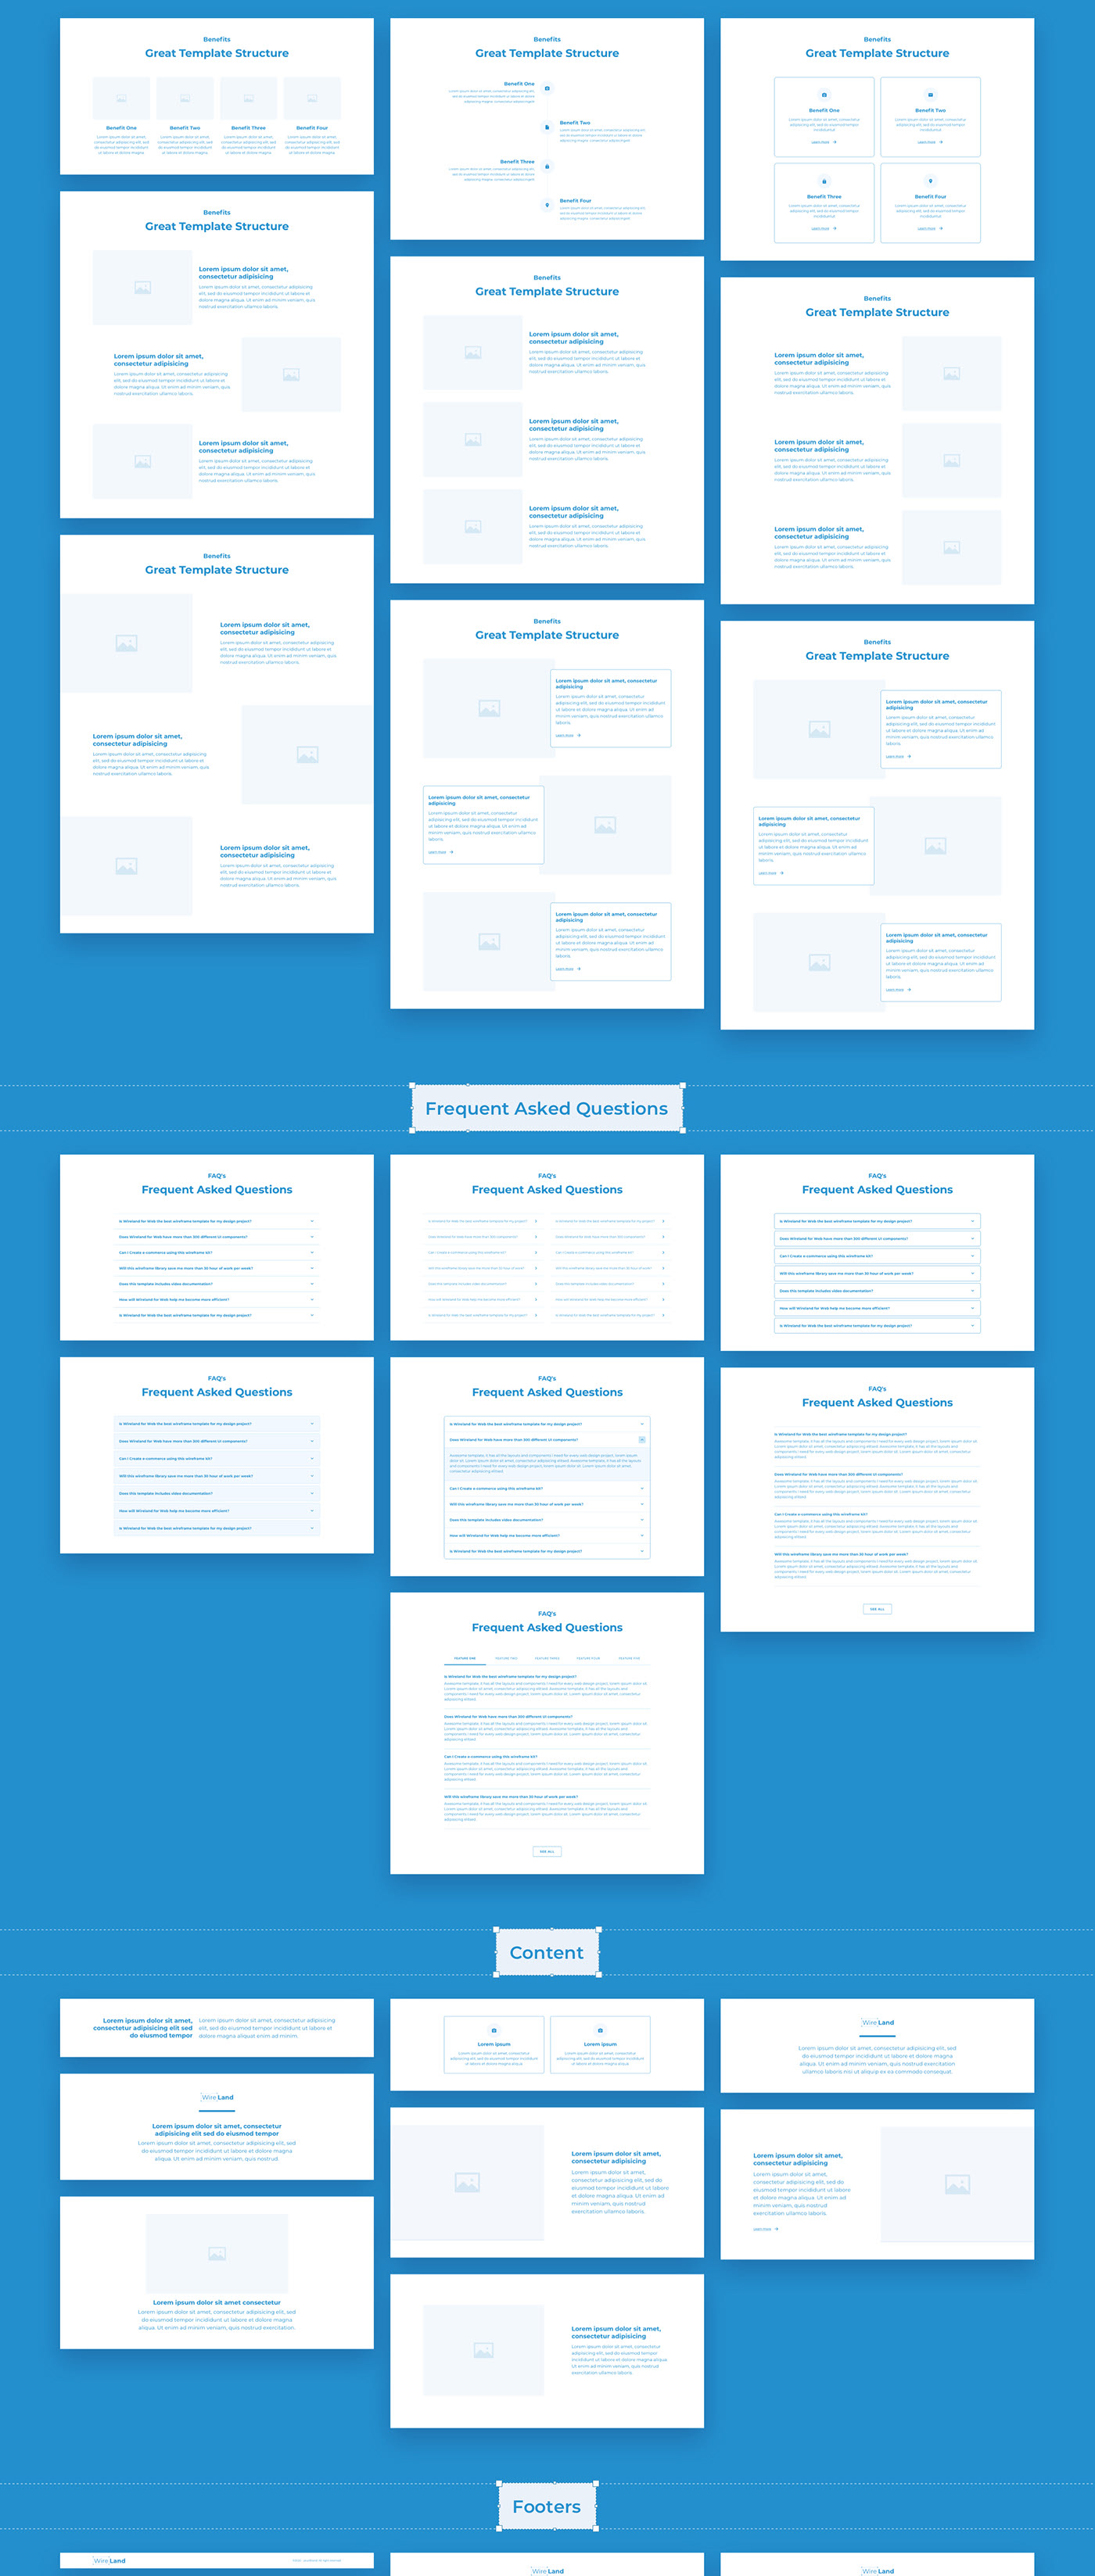 27182457728315.5f82276d3b42c - Wireland - Wireframe Library for Web Design Projects - Sketch Template